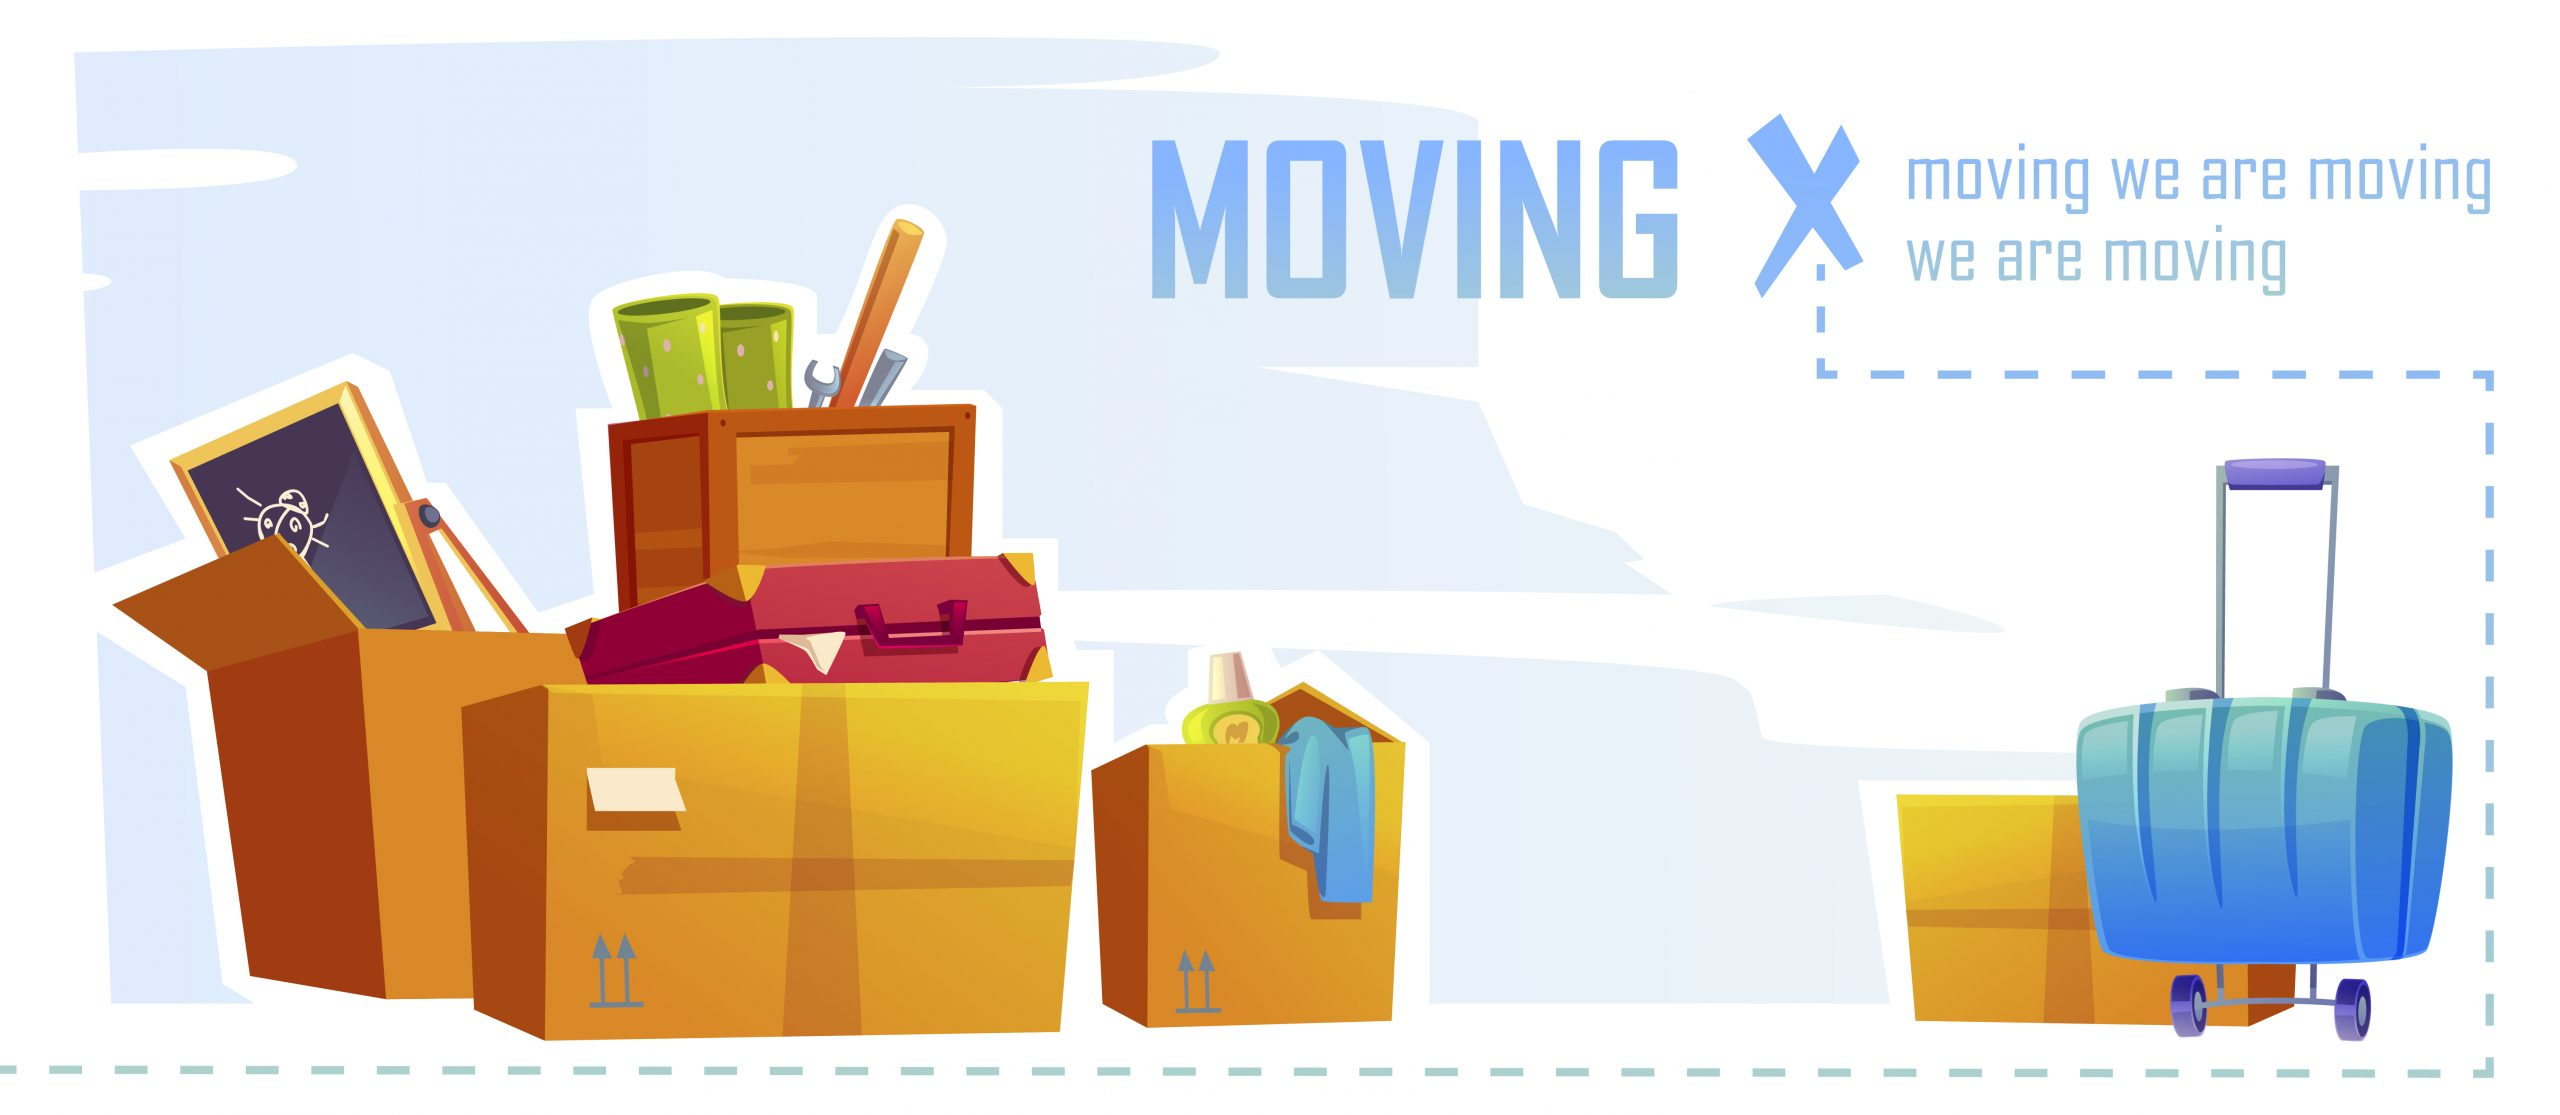 House moving banner with illustration of cardboard boxes and suitcase. Vector cartoon background with carton package for home things, tools, bags and stuff. Concept of relocation, apartment change